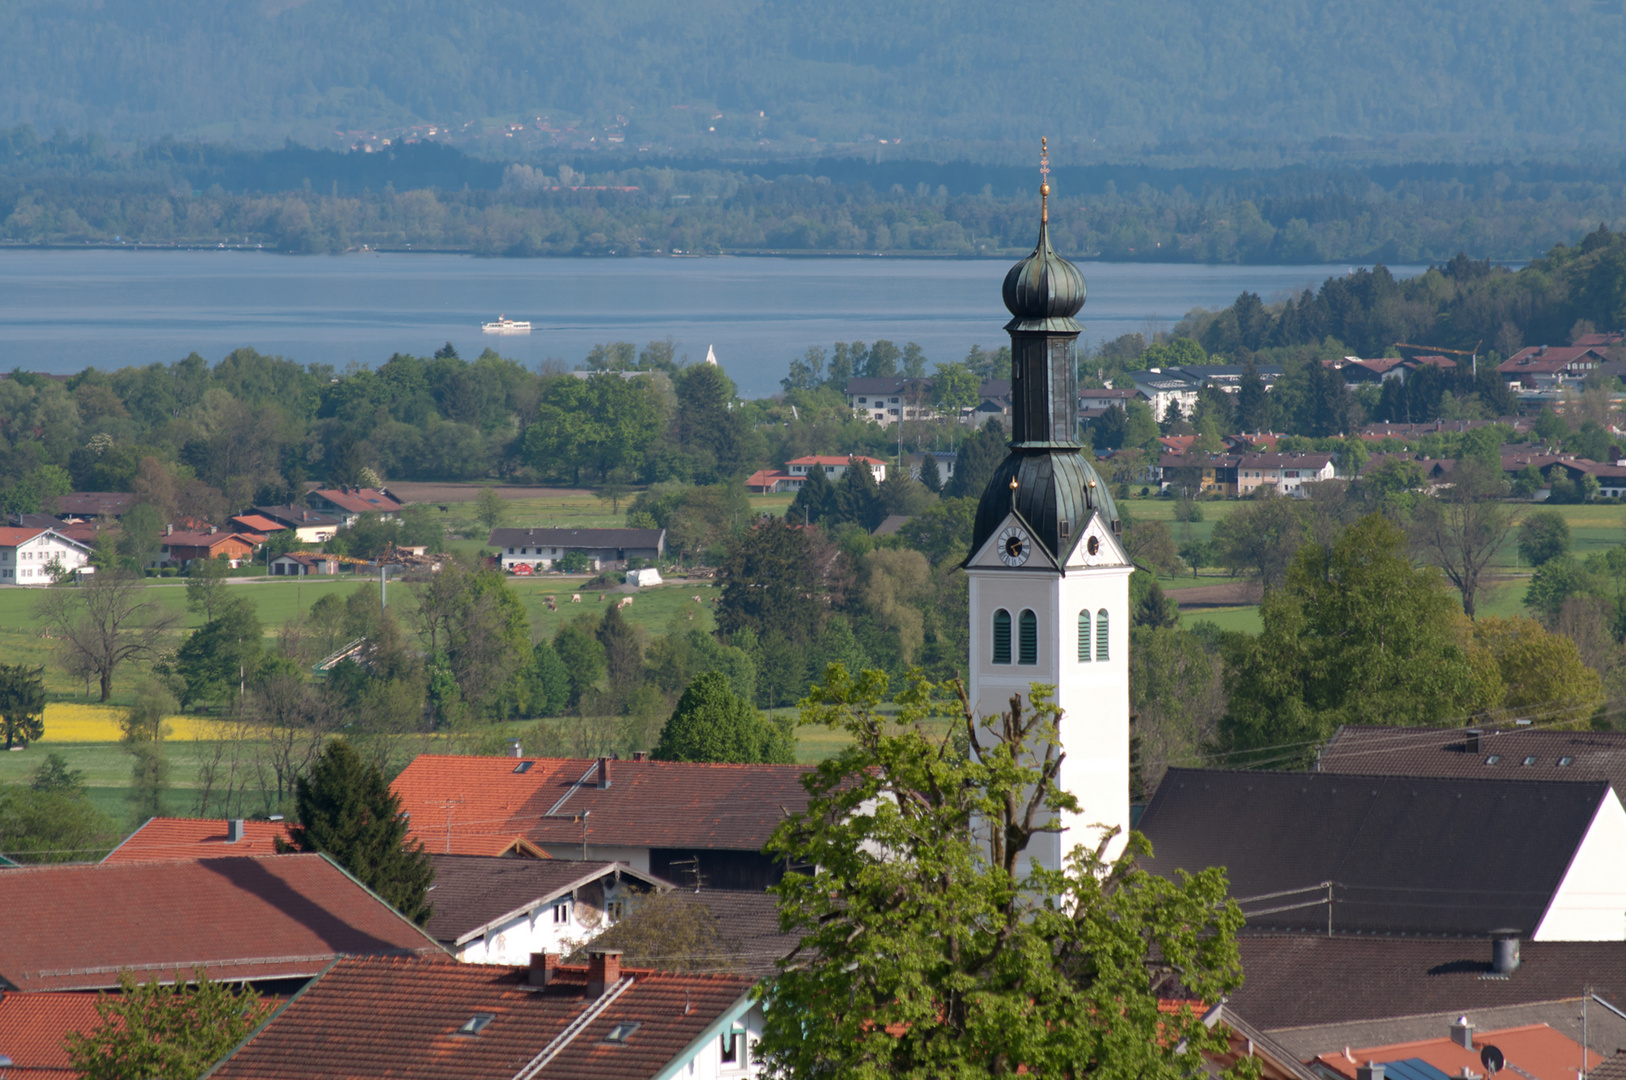 Rimsting (chiemsee)